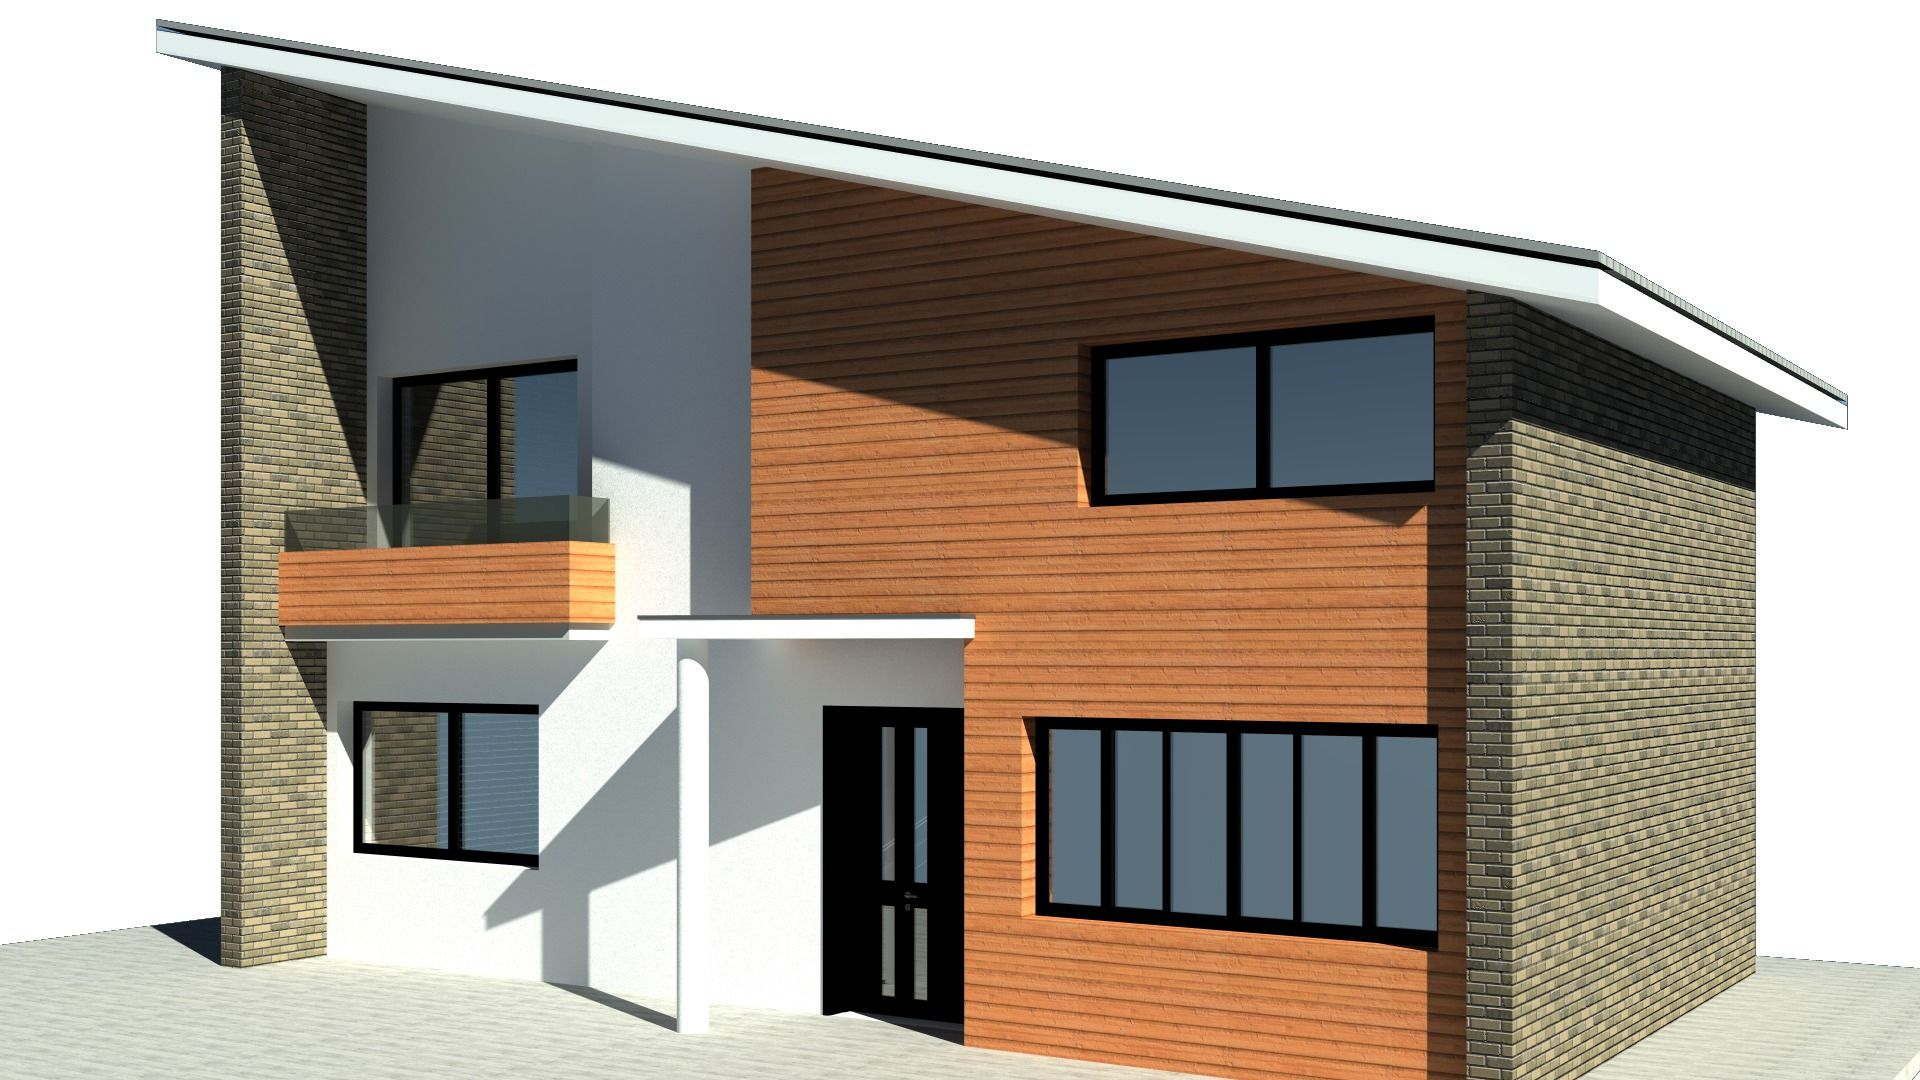 Details about House plans (160 sq meters) House plans